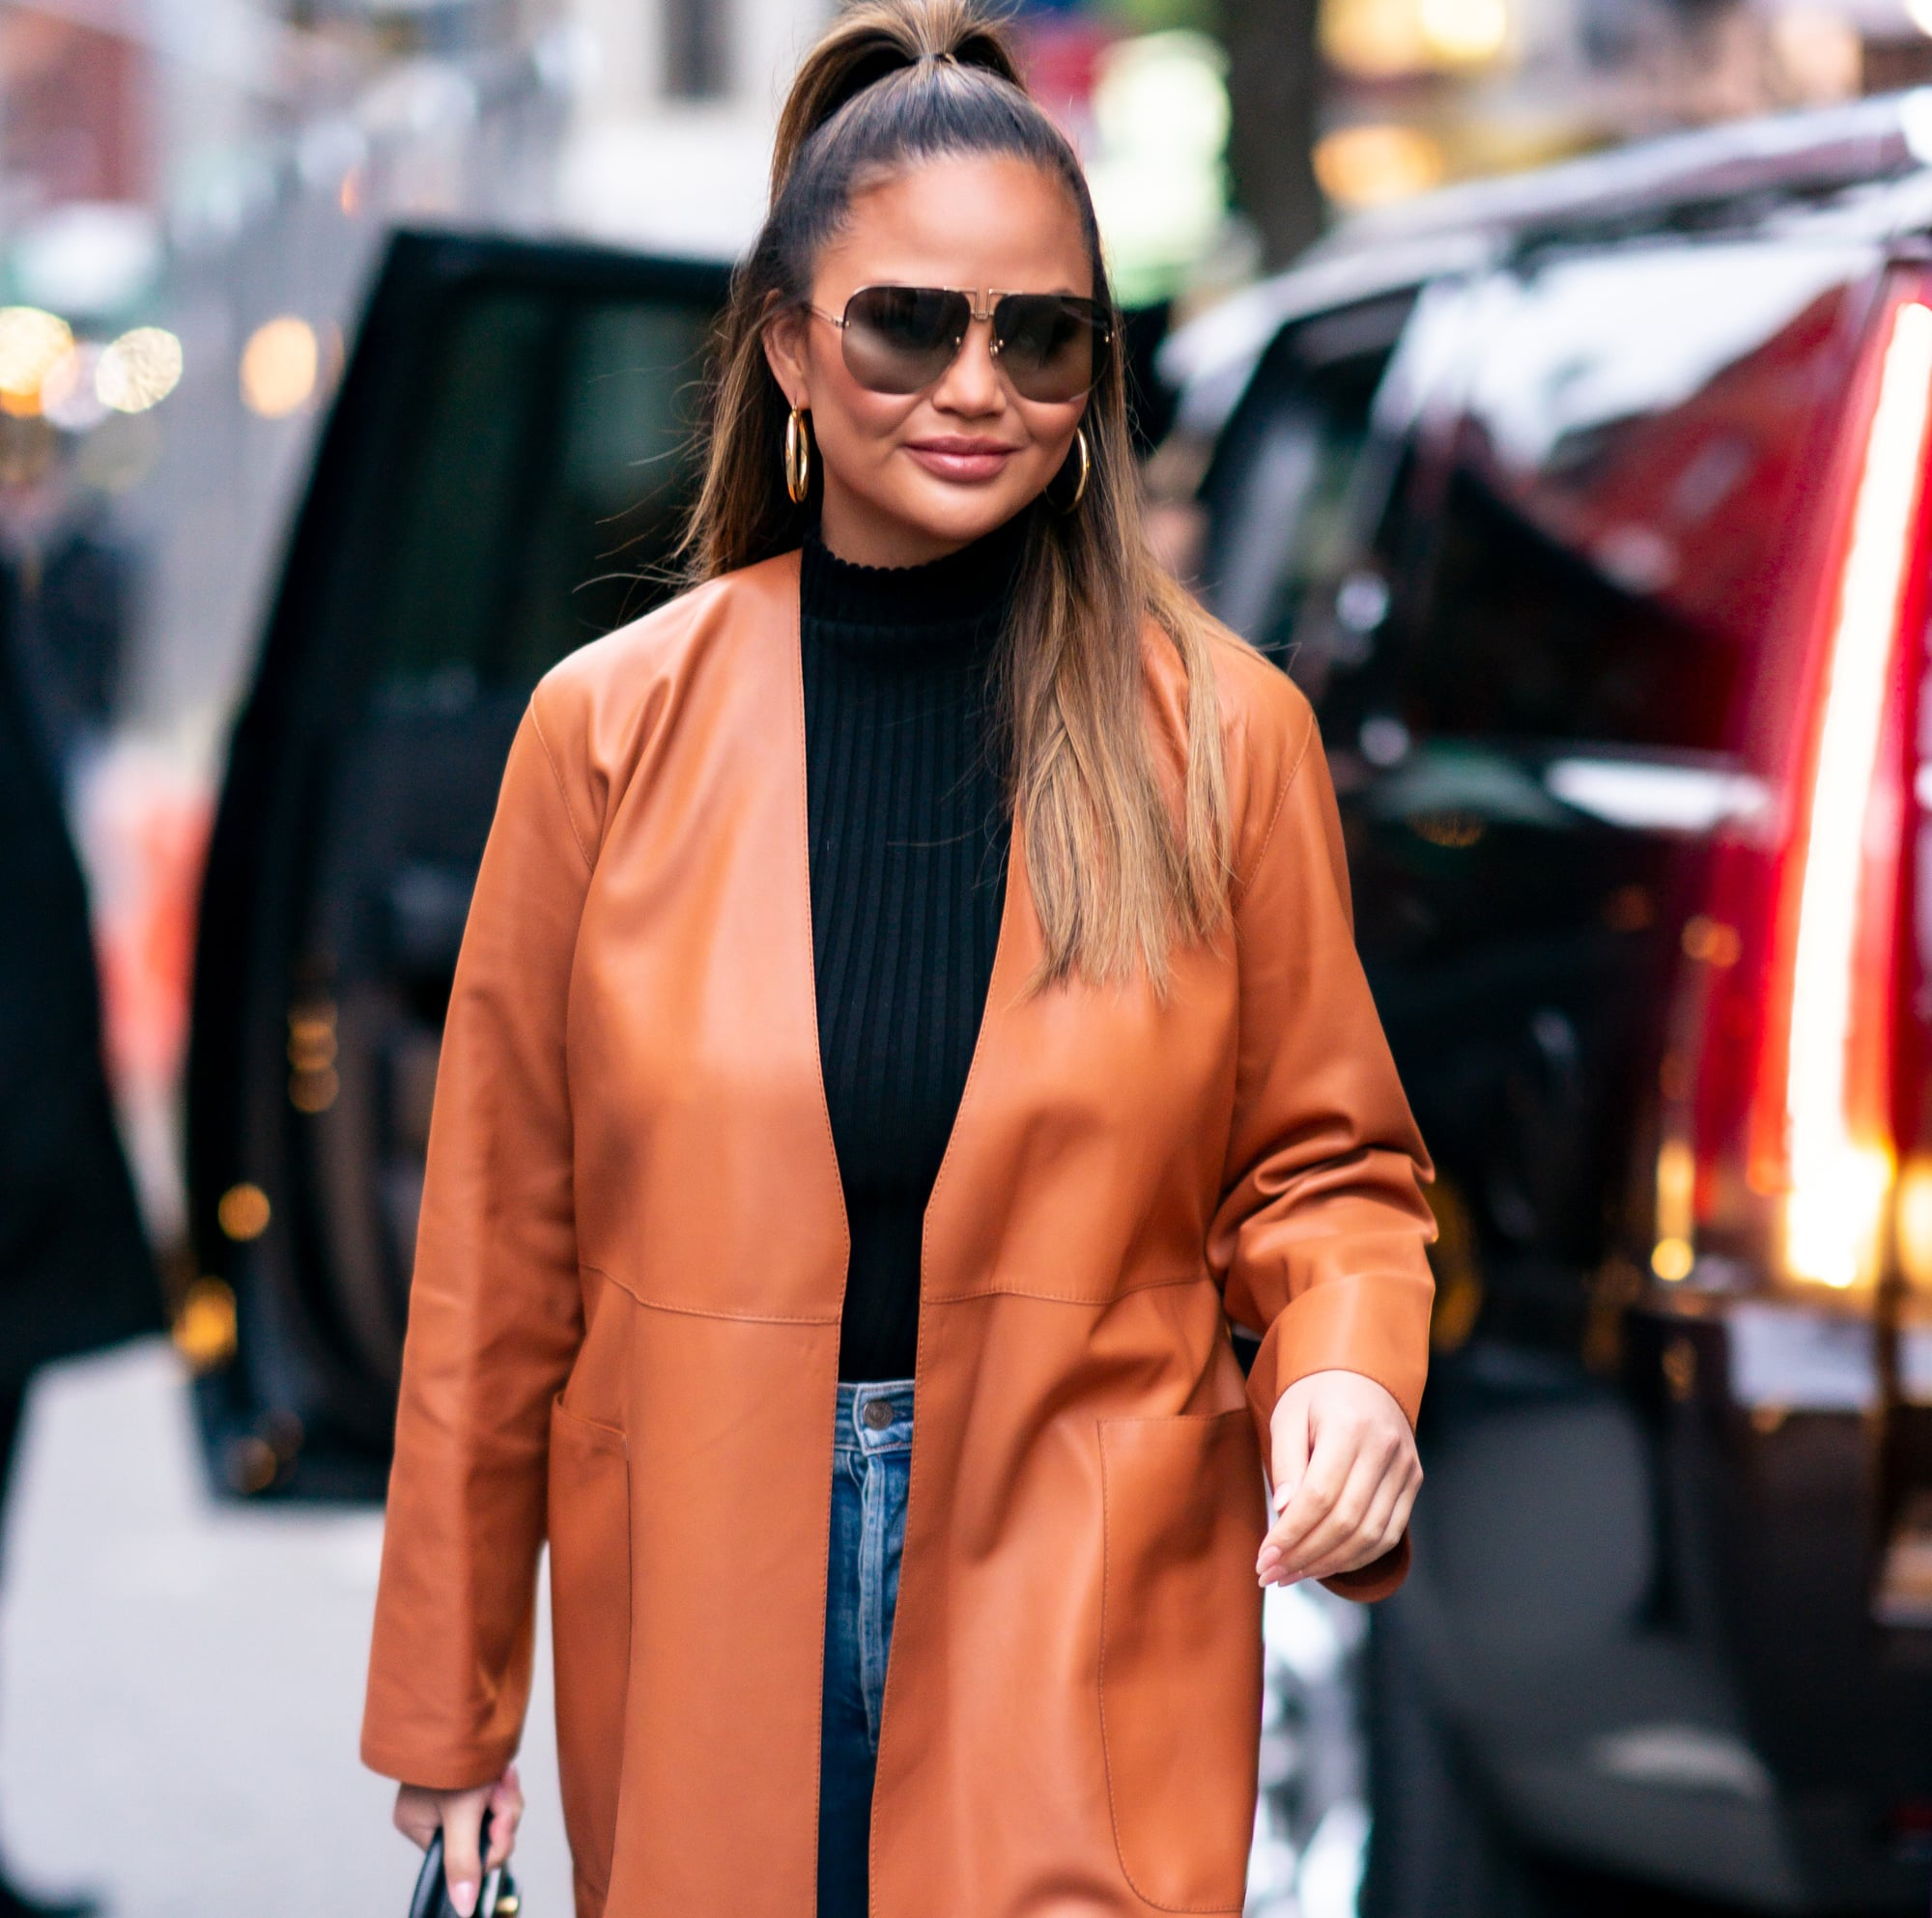 Chrissy Teigen Resells Her Clothing on The RealReal and Donates the Money to Charity